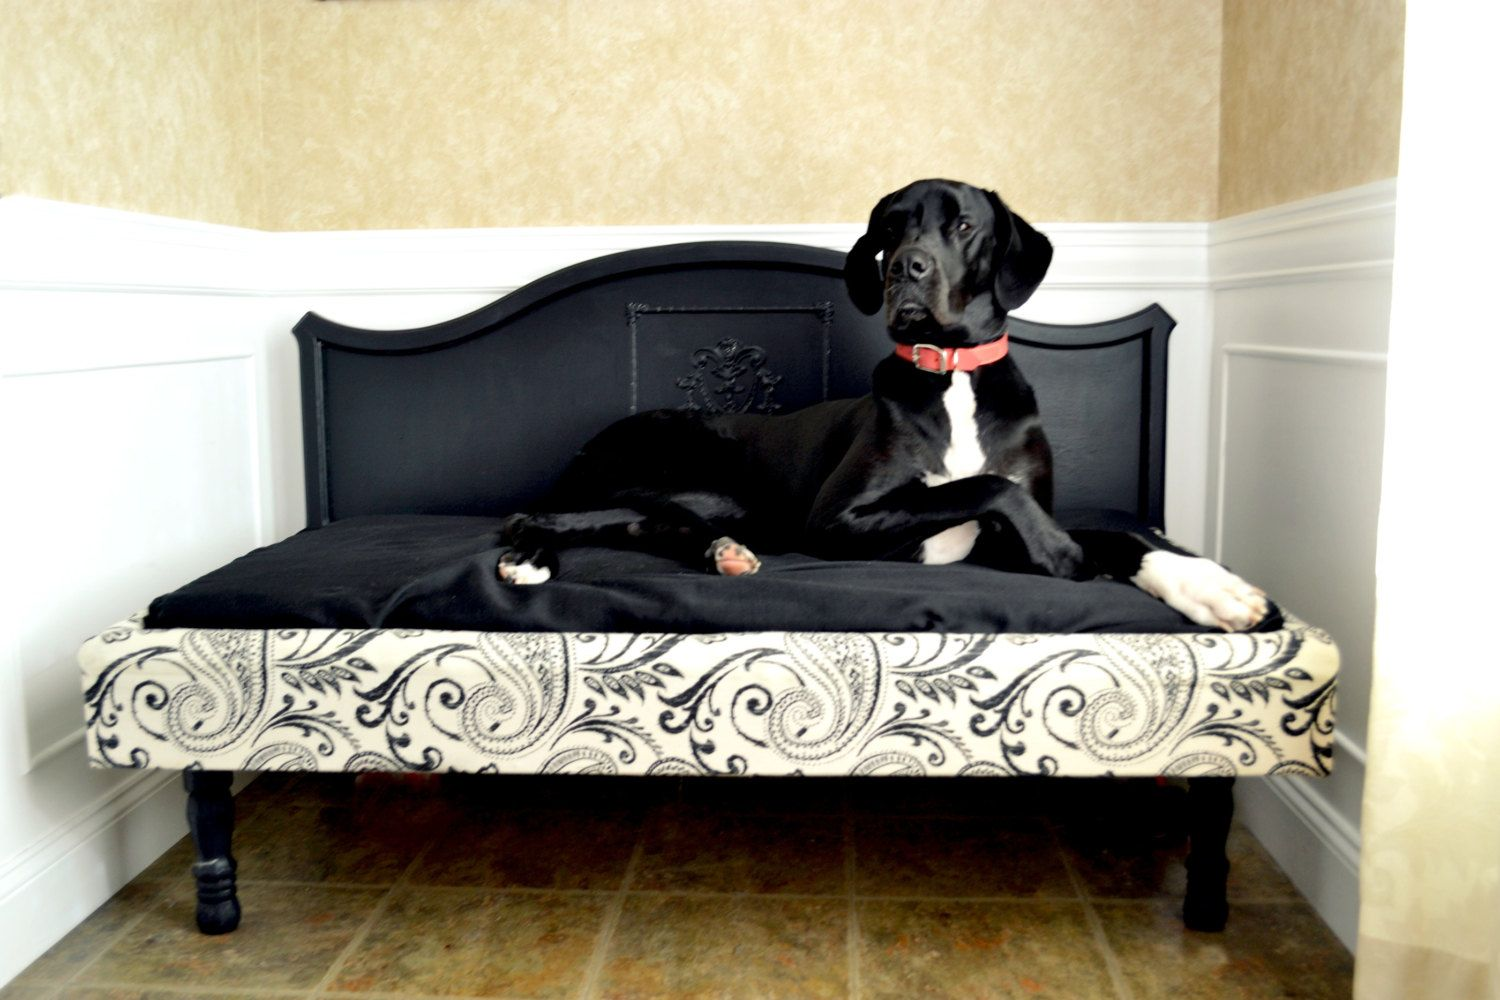 x large dog bed great dane size by shabbymychic on etsy. Black Bedroom Furniture Sets. Home Design Ideas